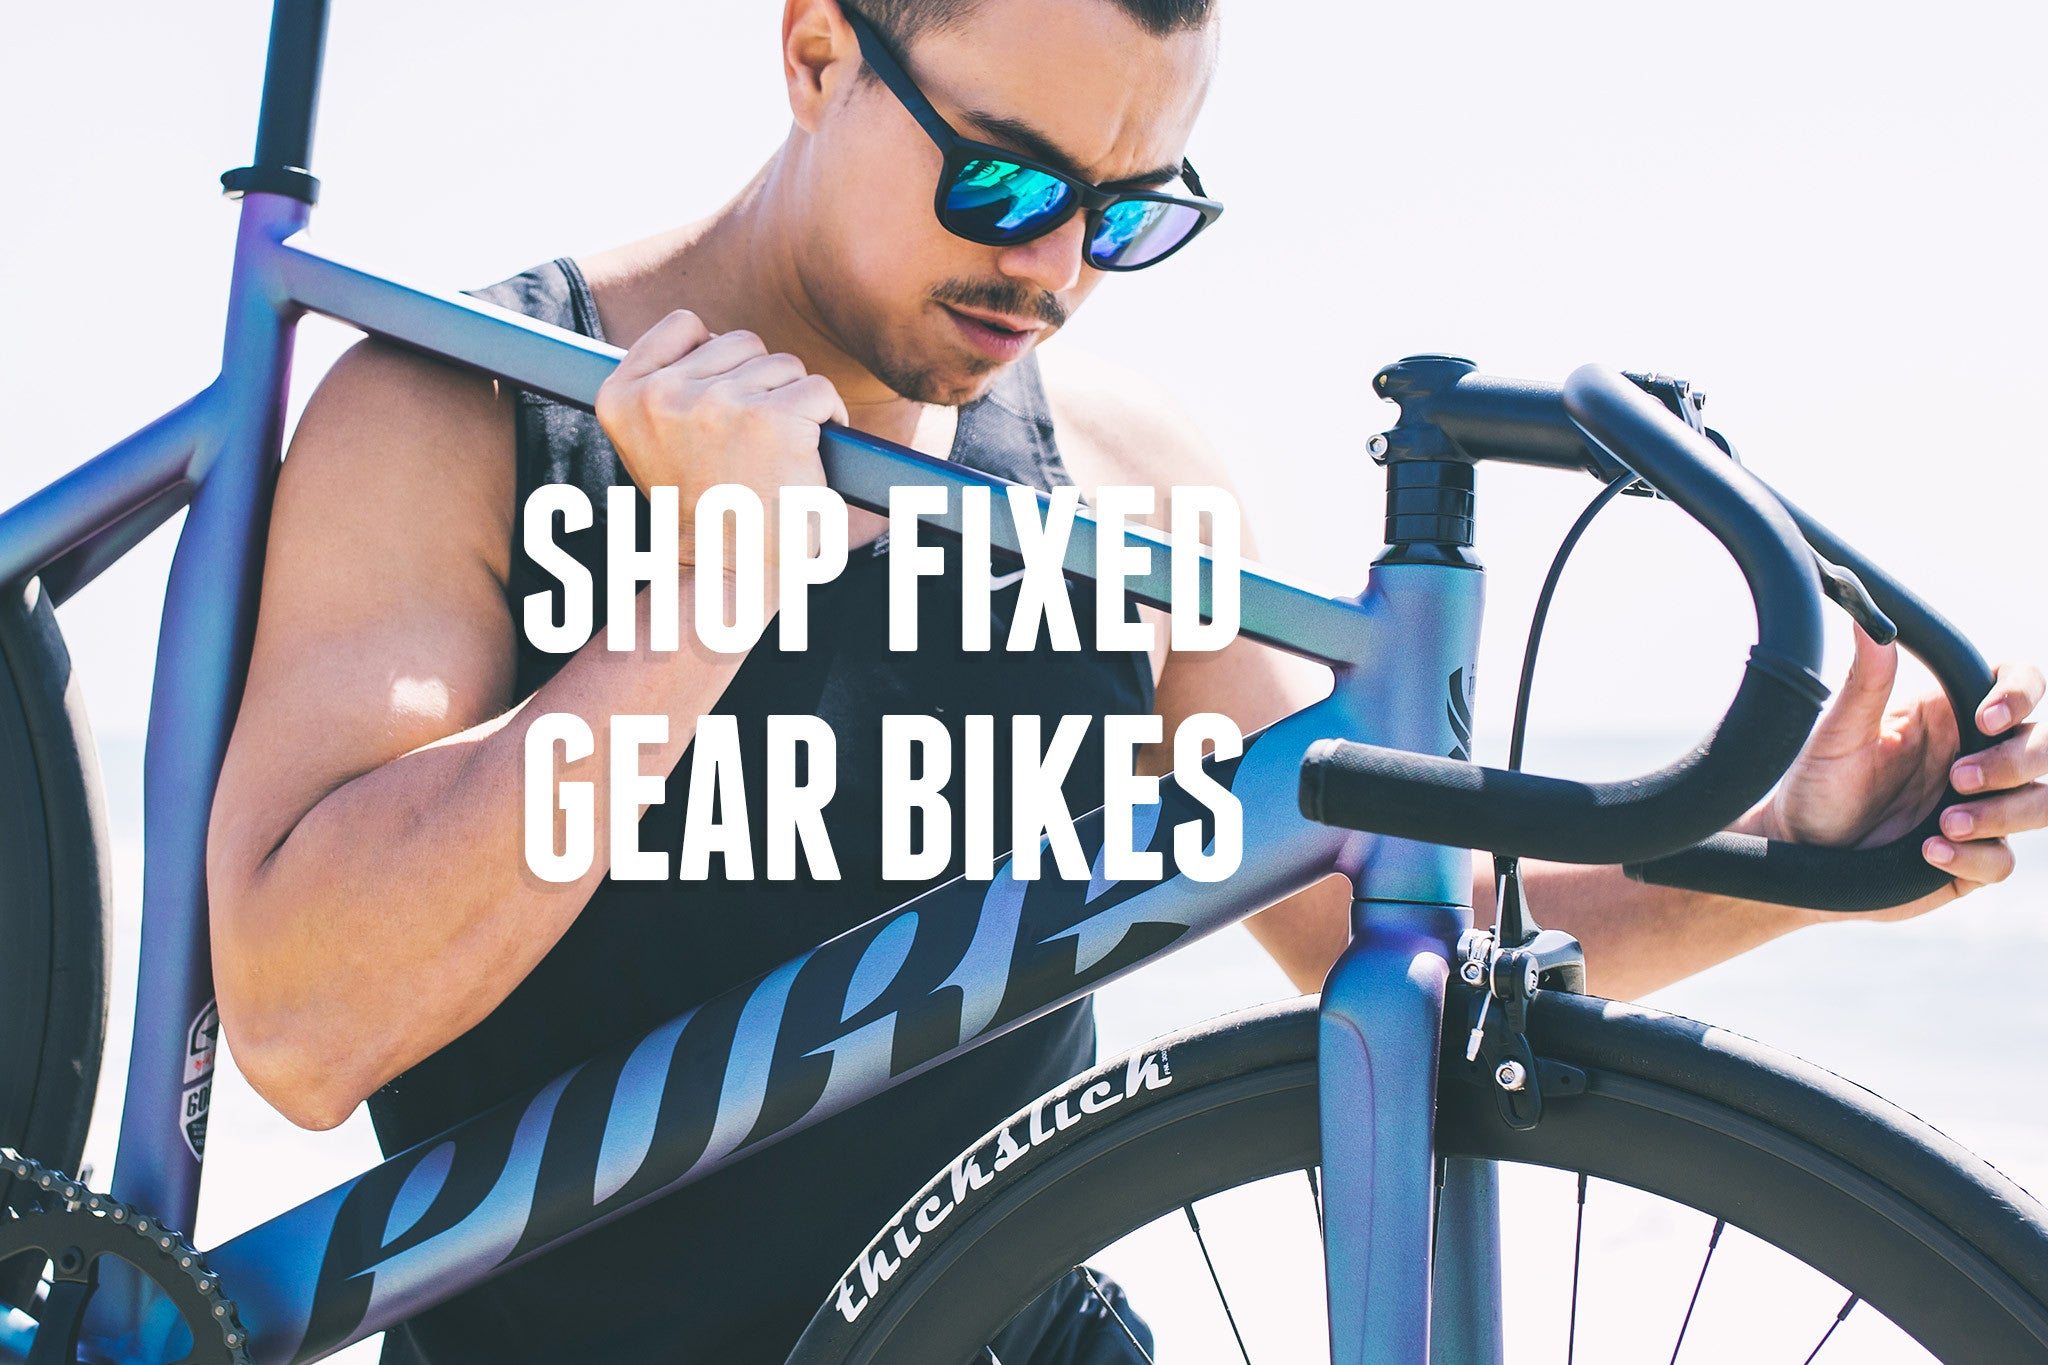 Get a Fixie